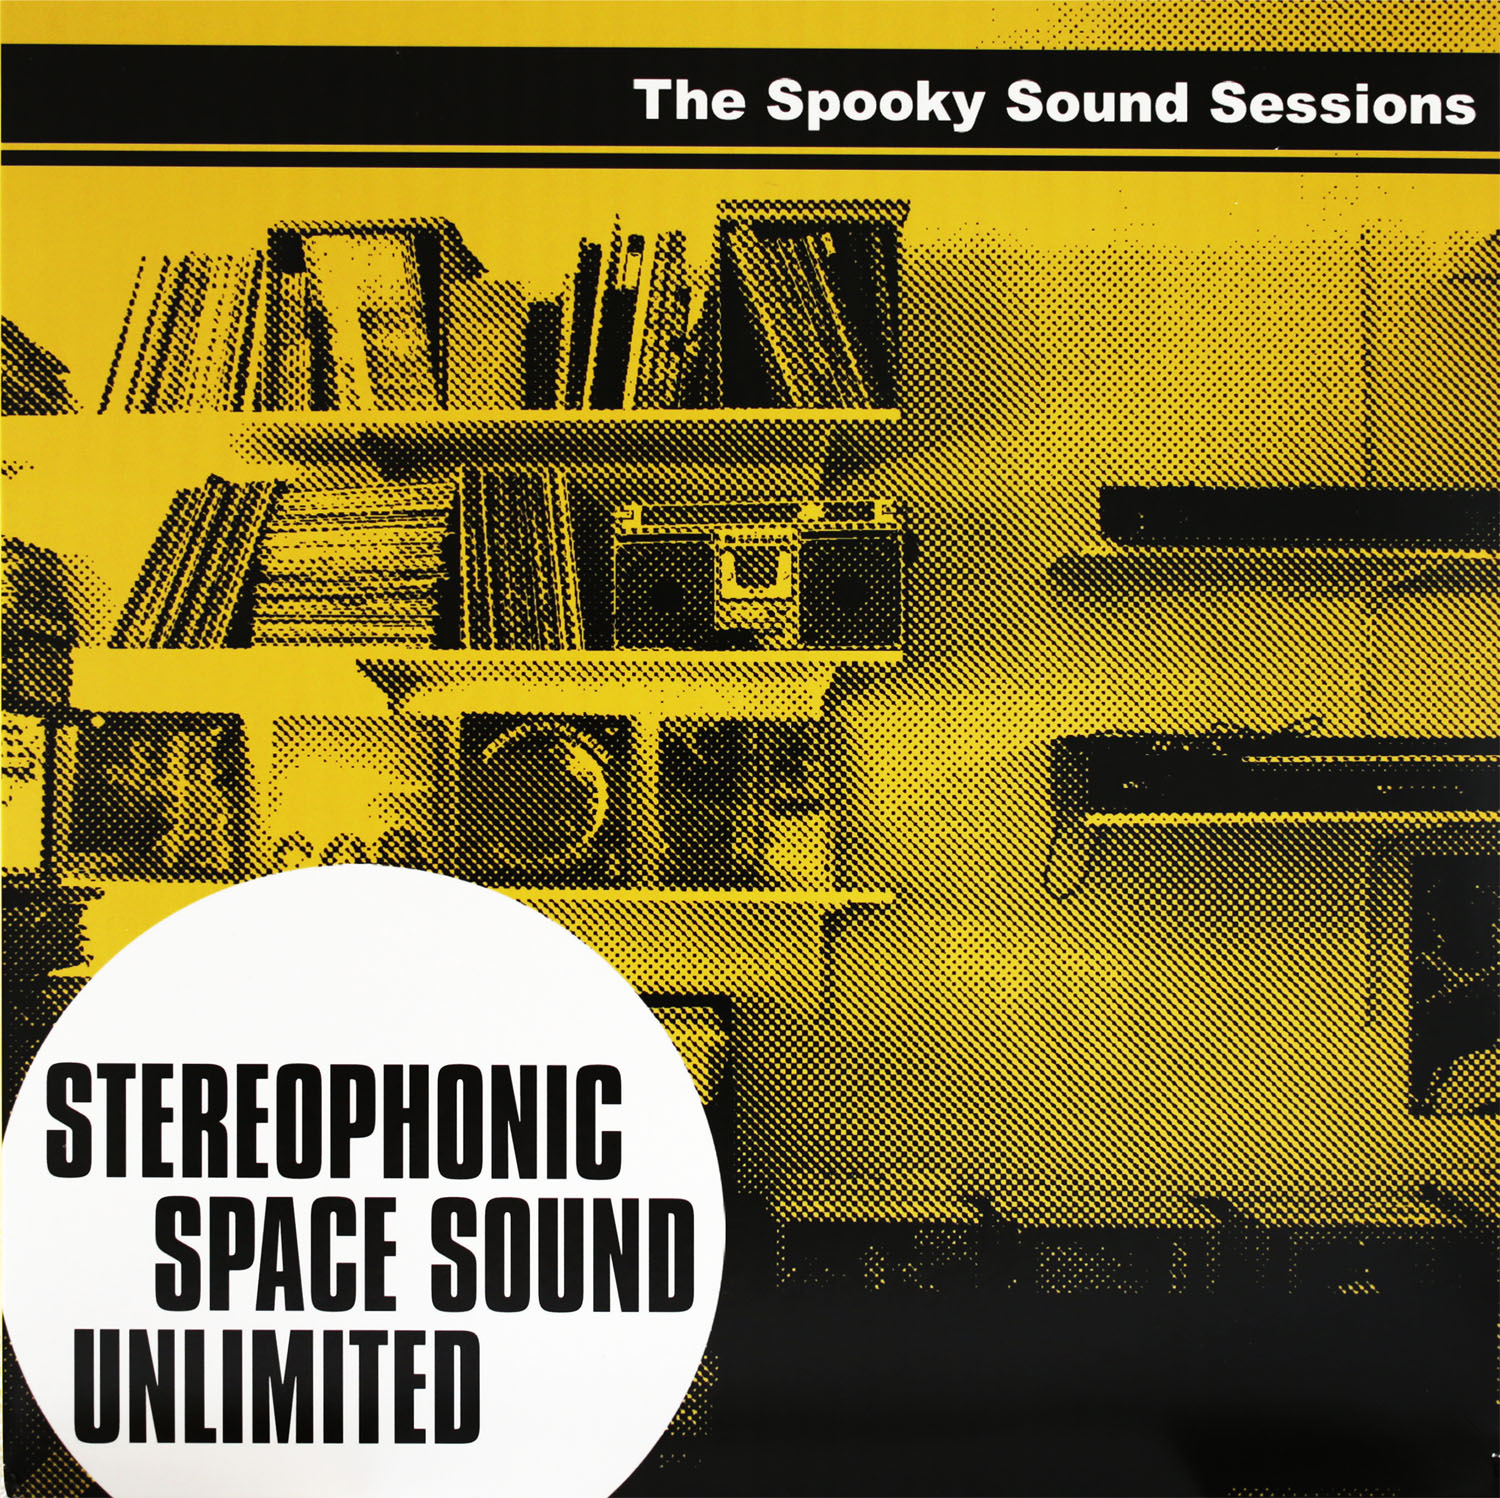 Stereophonic Space Sound Unlimited  The Spooky Sound Sessions